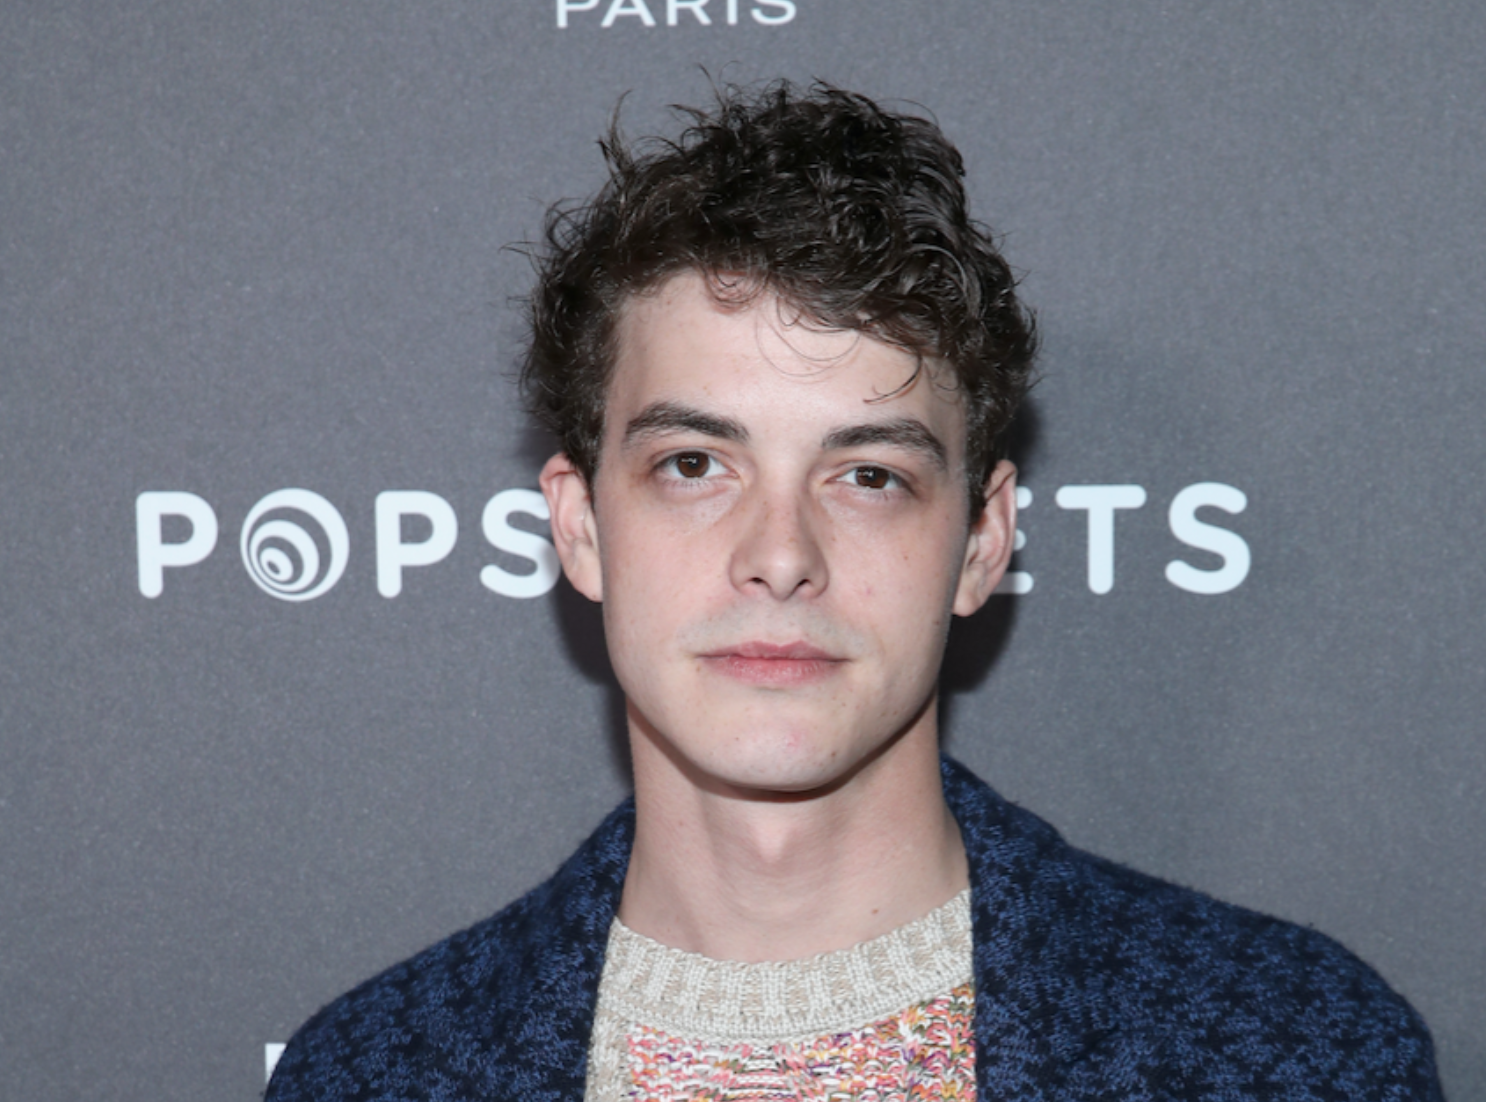 Israel Broussard on Happy Death Day 2U, To all the boys